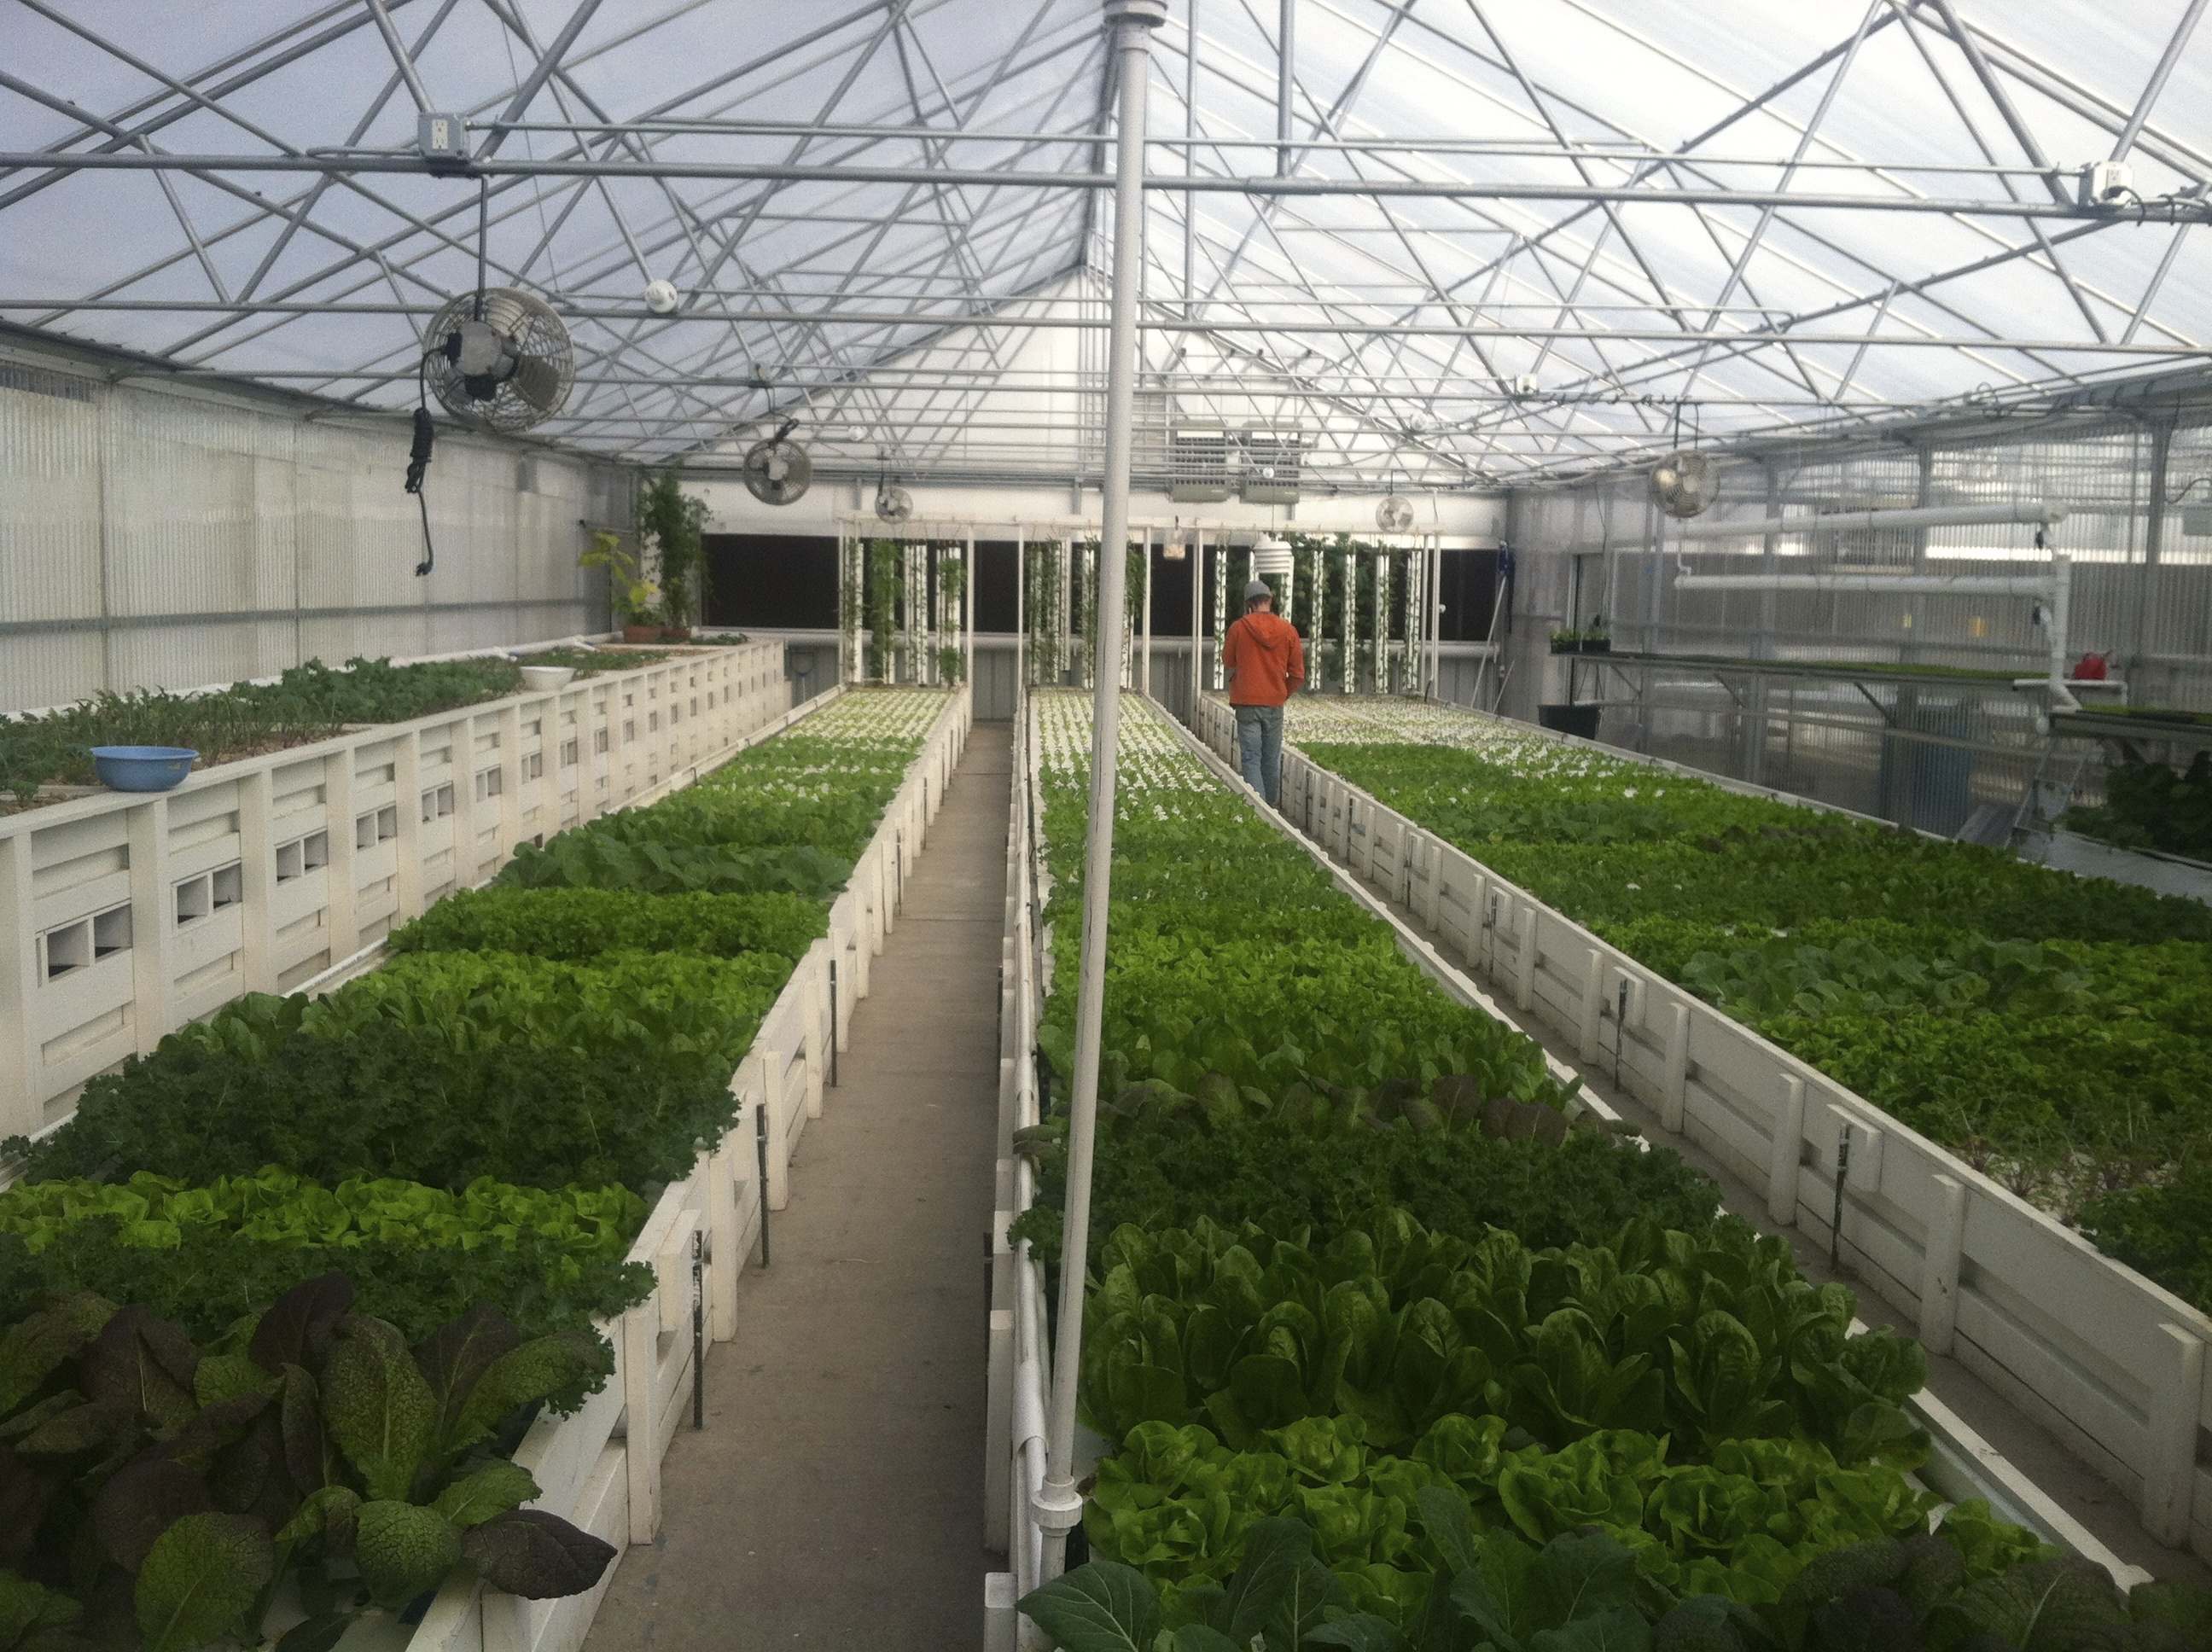 A Guide to Planning a Commercial Aquaponics Greenhouse | Ceres ... on greenhouse conservatory designs, garage plans designs, shed plans designs, gardening plans designs, greenhouse structures and designs, eco house plans designs, hoop house greenhouse designs, home plans designs, quonset greenhouse structure designs, best greenhouse designs, unique greenhouse designs,